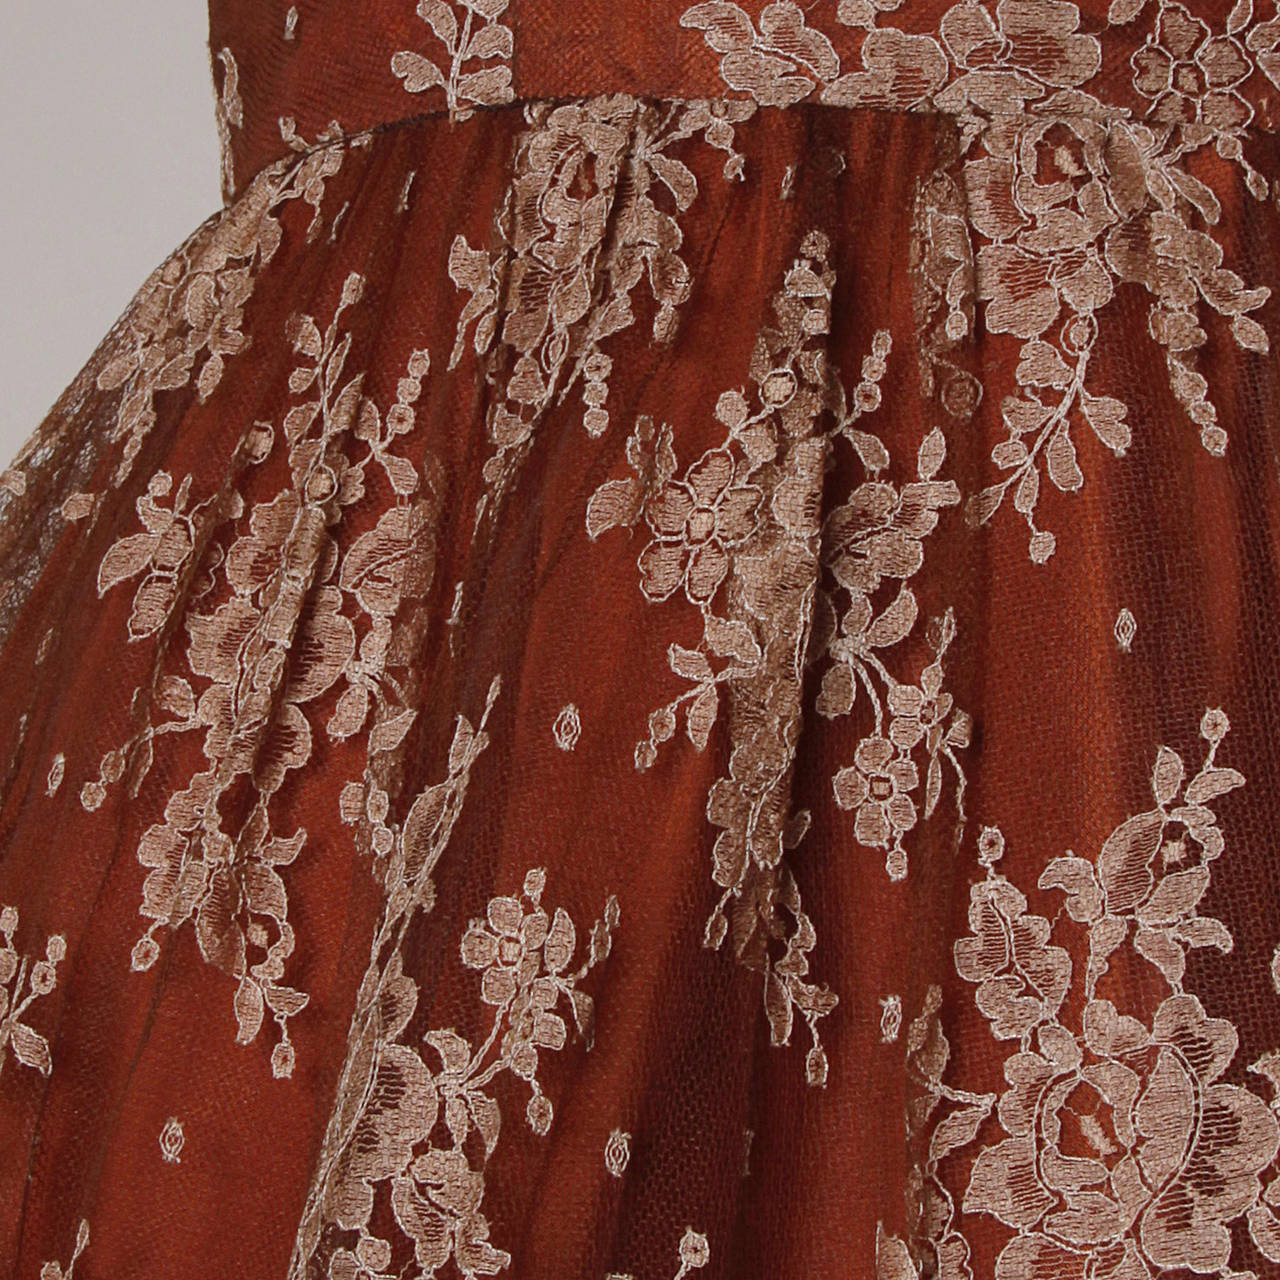 Dreamy 1950s Brown Tulle Chantilly Lace Cocktail Dress 3